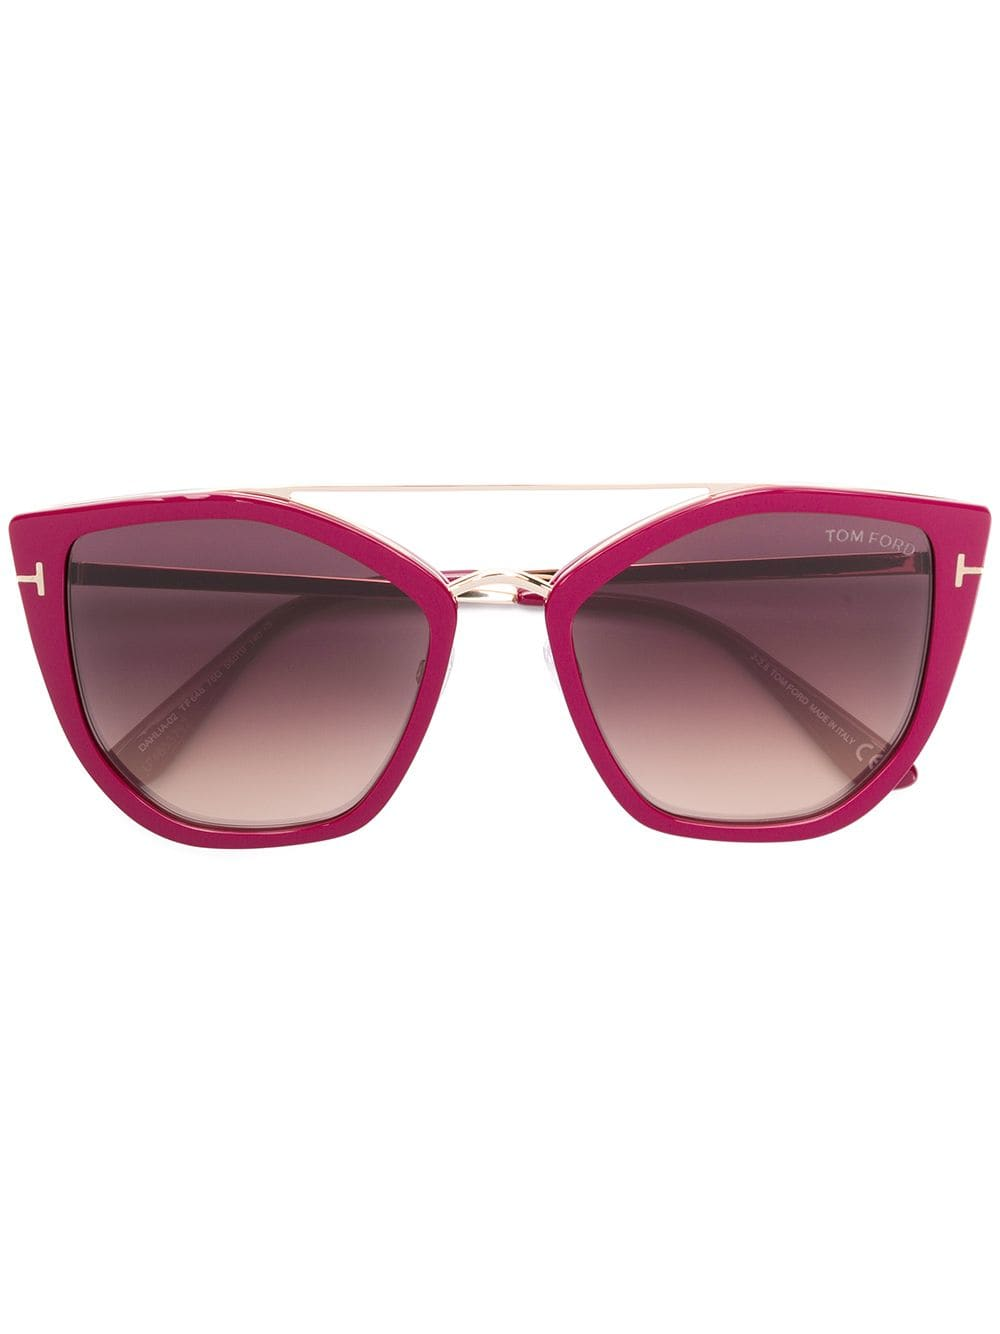 d9be56a1d4 tom-ford-eyewear-cat-eye-shaped-sunglasses -pink-farfetch-com-photo.jpg 1540096819